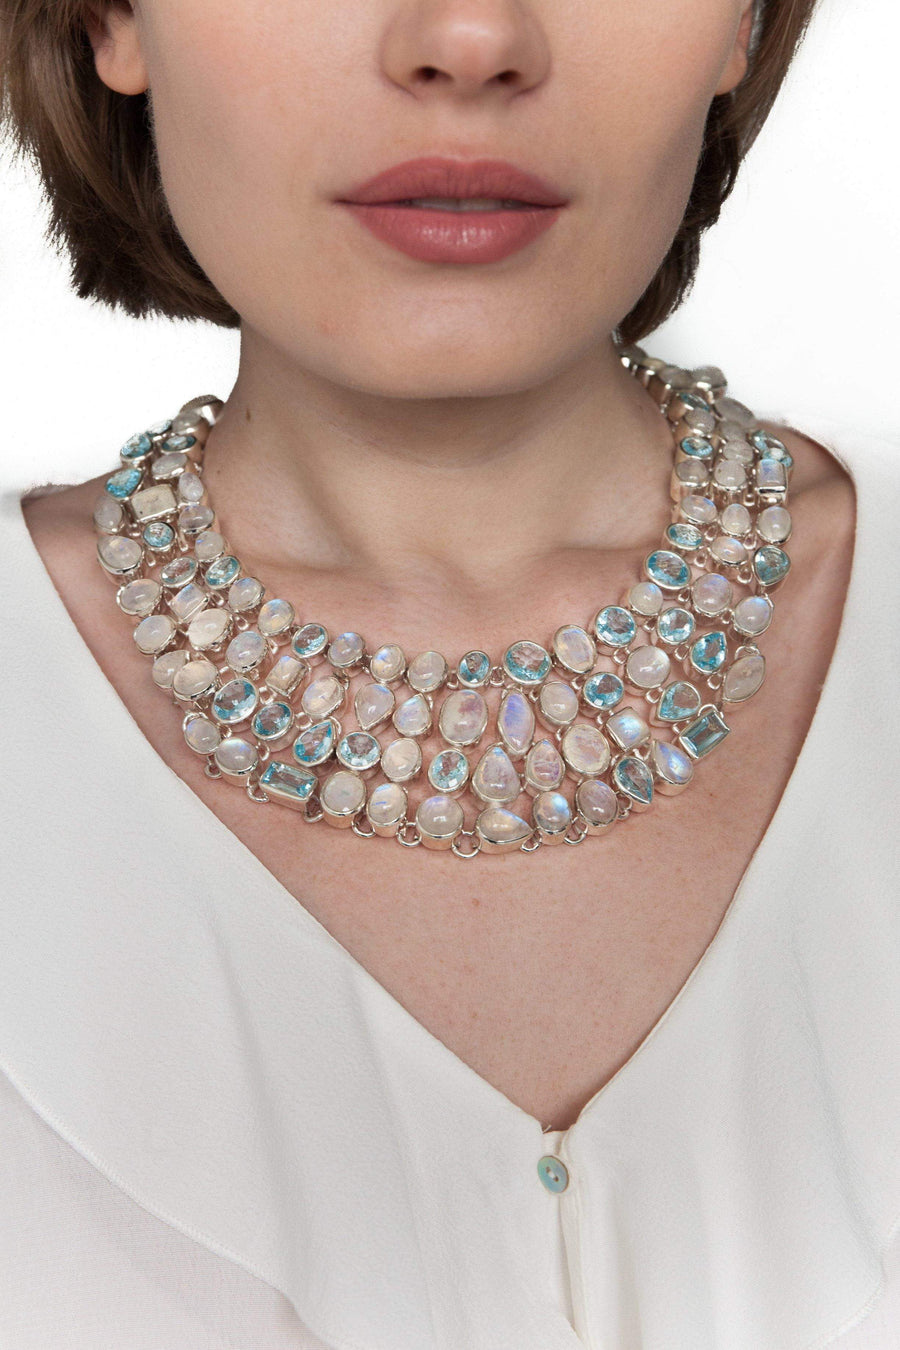 Mosaic Moonstone & Blue Topaz Necklace - Inaya Jewelry